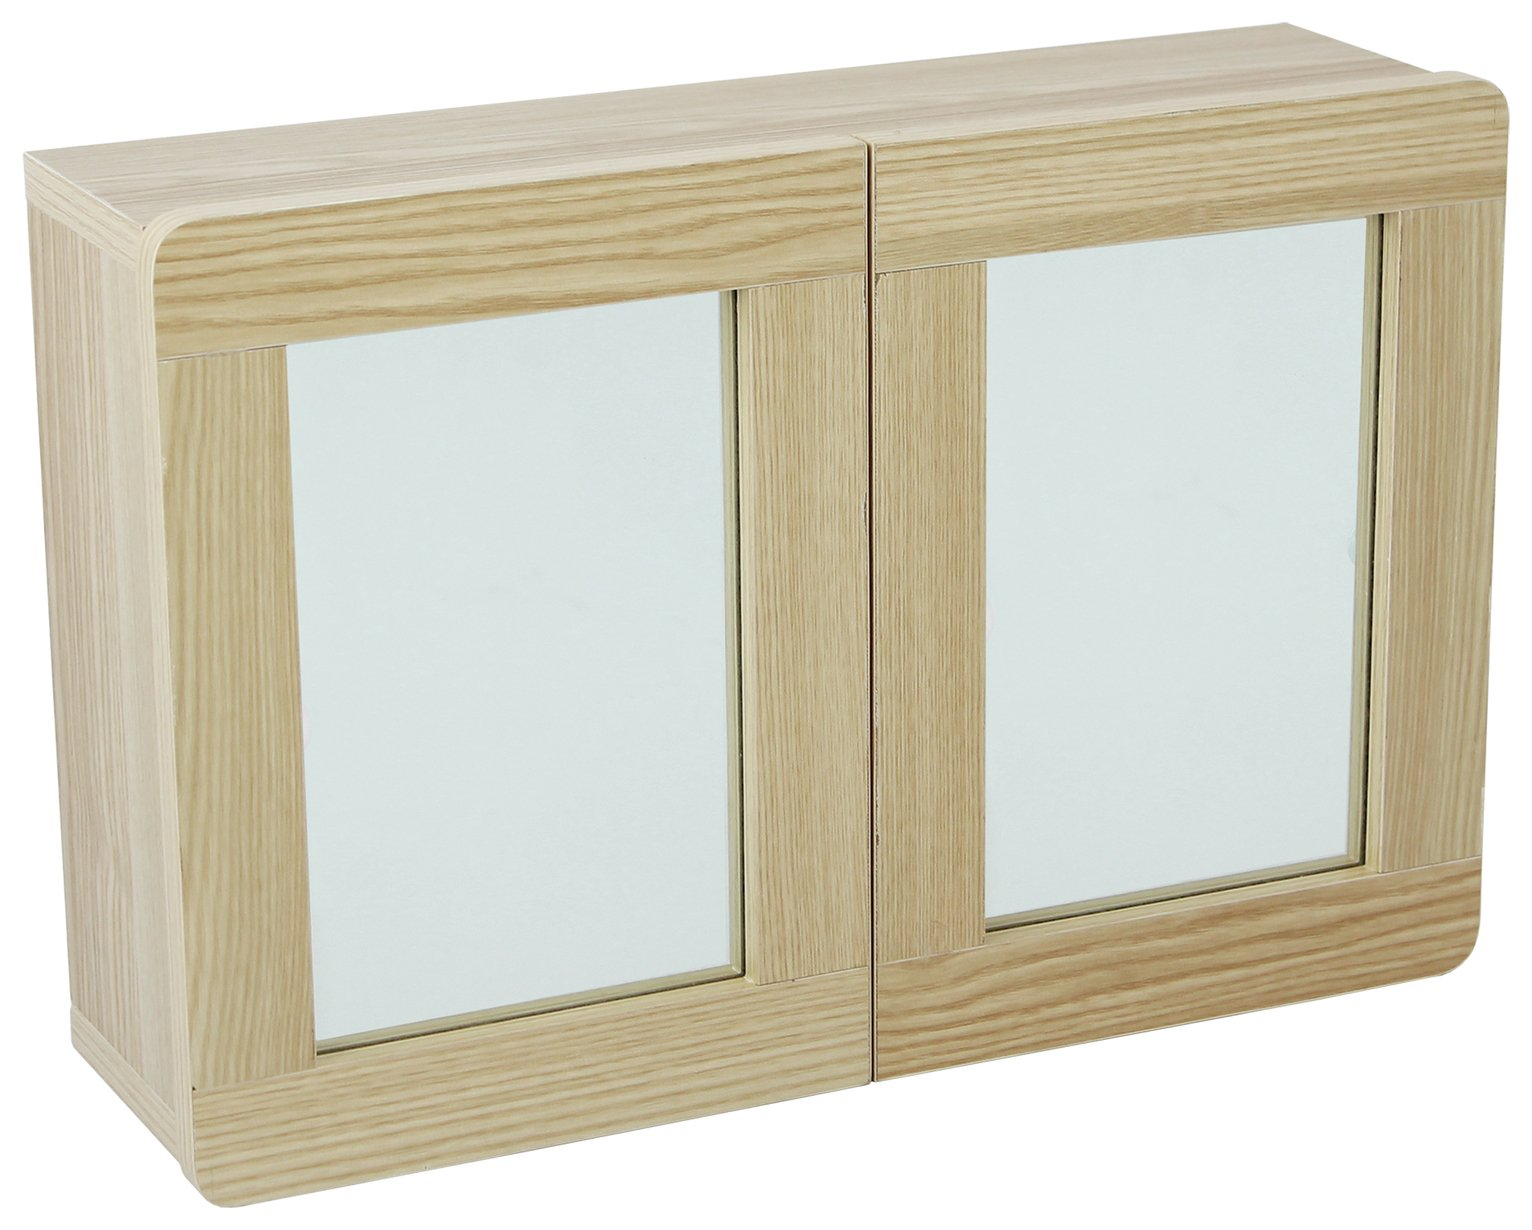 Image of Collection Caleb 2 Door Mirrored Wall Cabinet - Two Tone